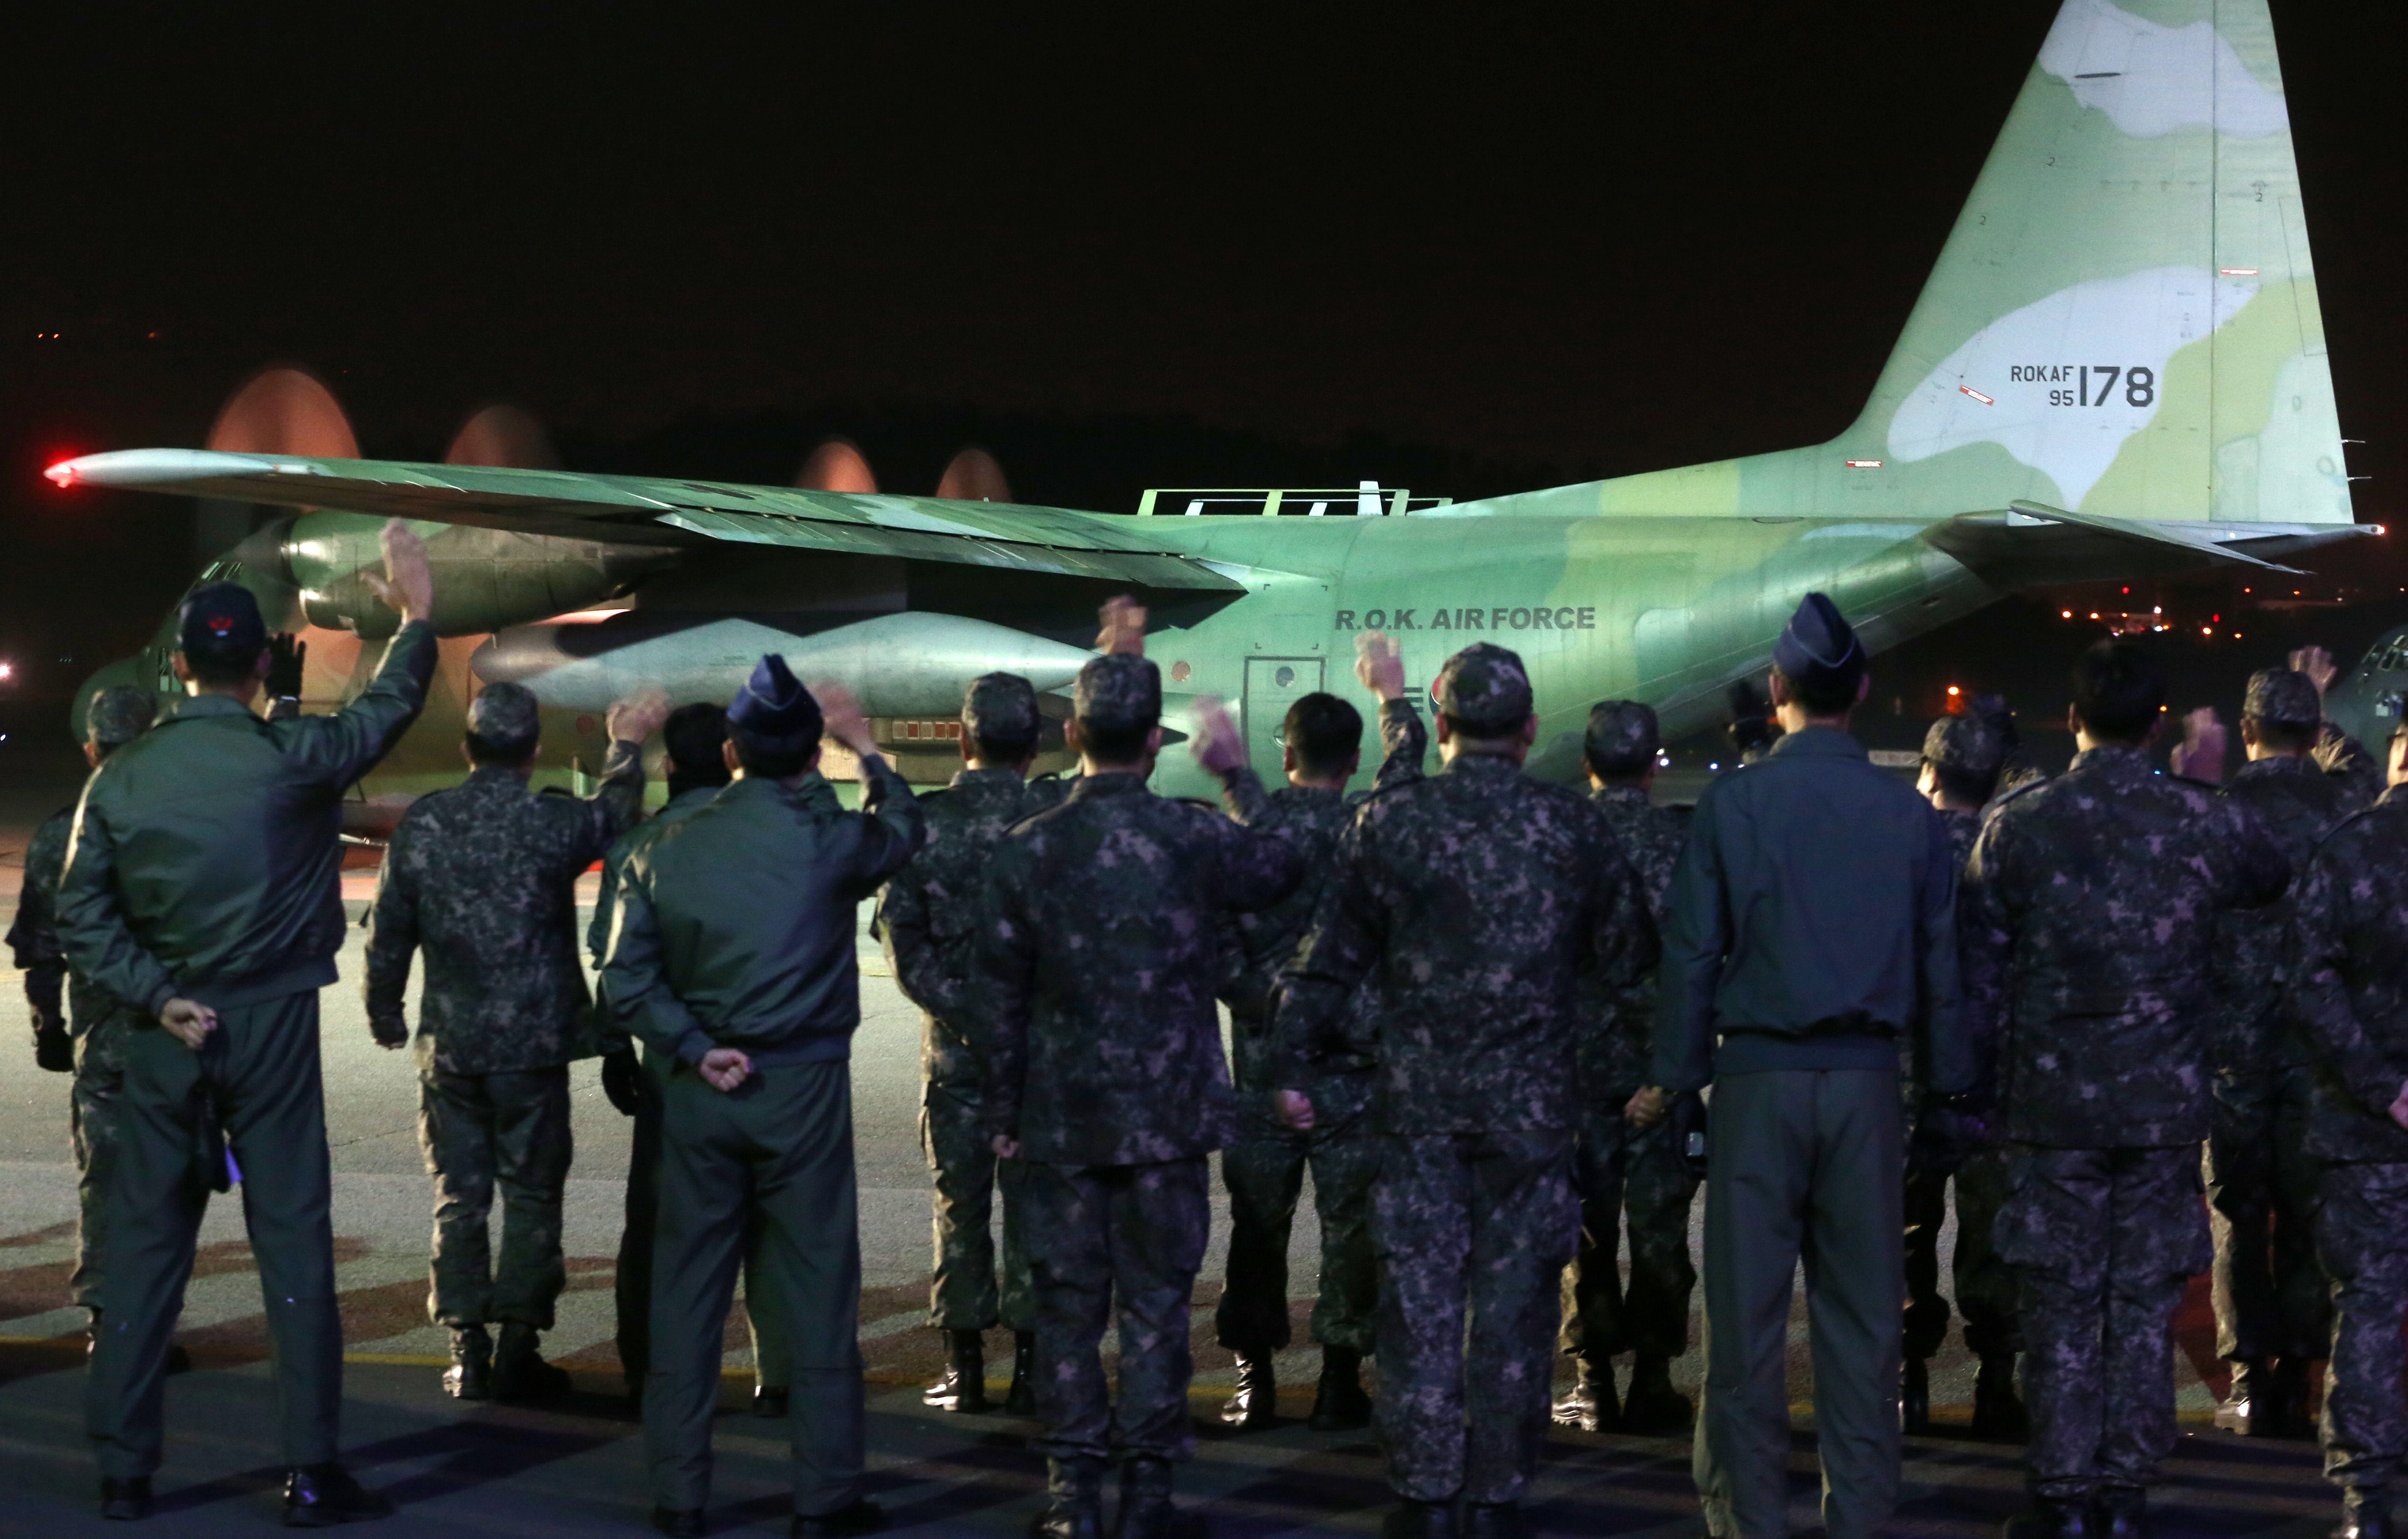 South Korean Air Force officials send off two C-130 military cargo aircraft at Seoul Air Base on Nov. 14, 2013, which will carry relief aid to the Philippines. (Yonhap)